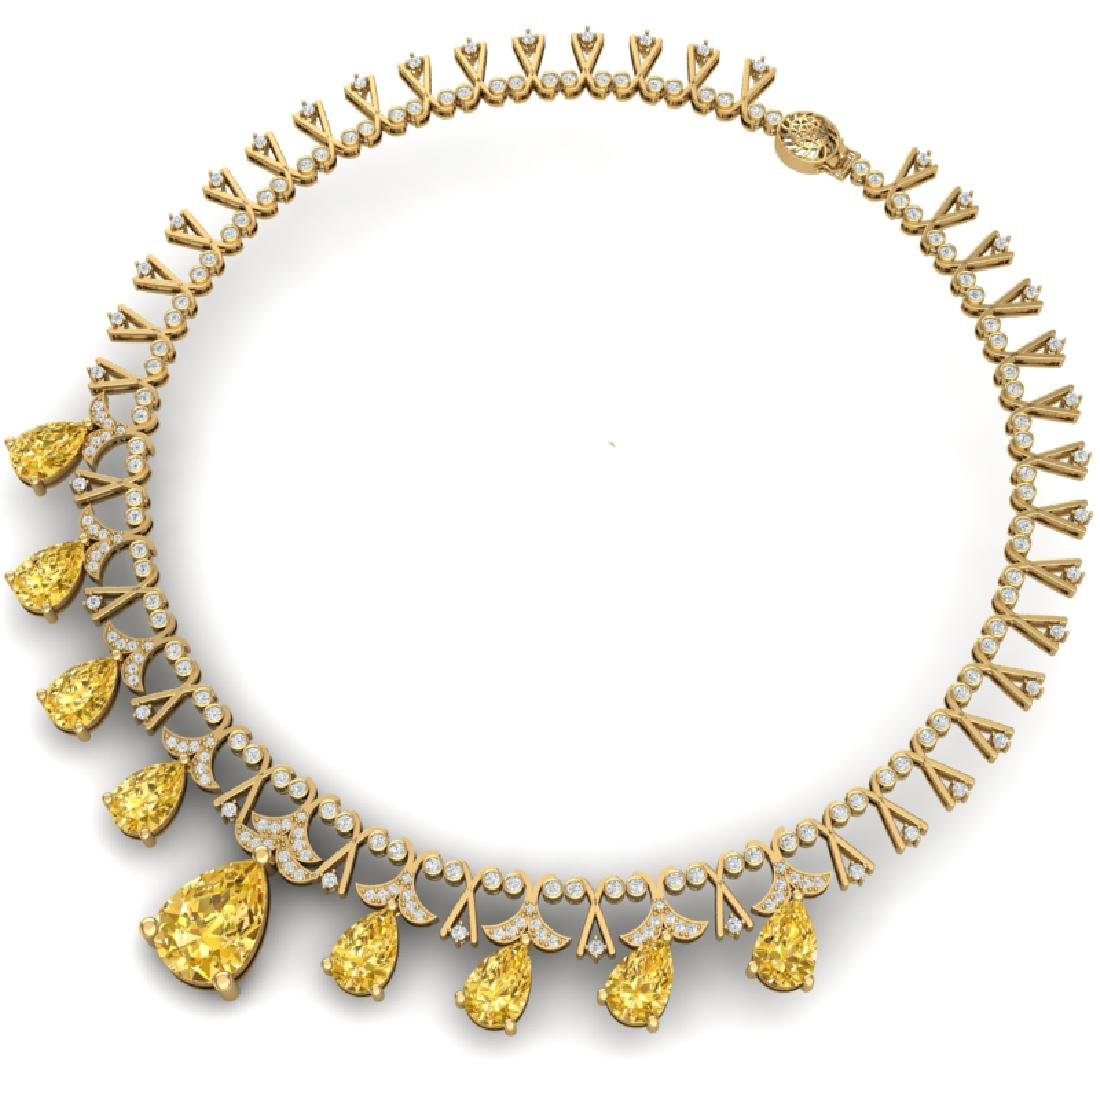 55.49 CTW Royalty Canary Citrine & VS Diamond Necklace - 3